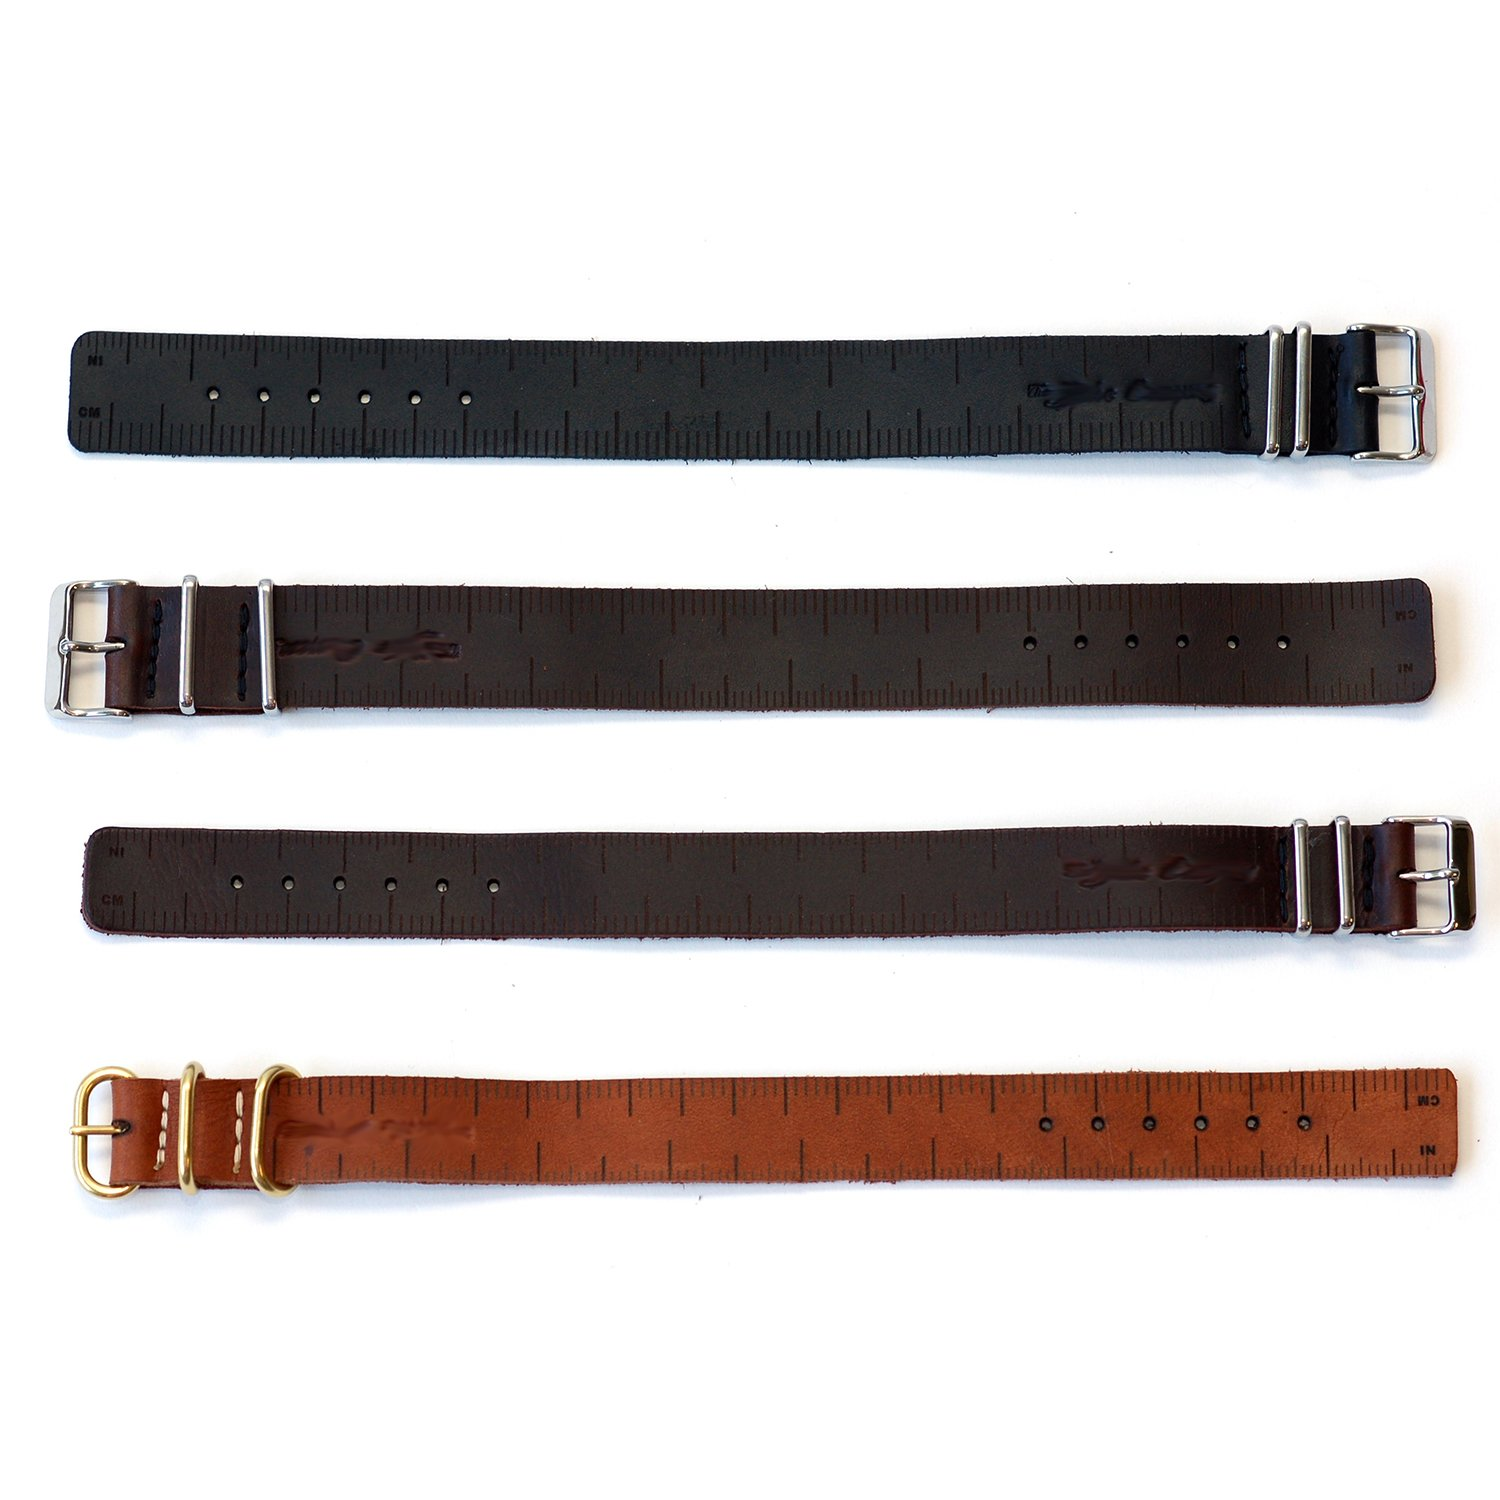 Leather Ruler Buckle Bracelet